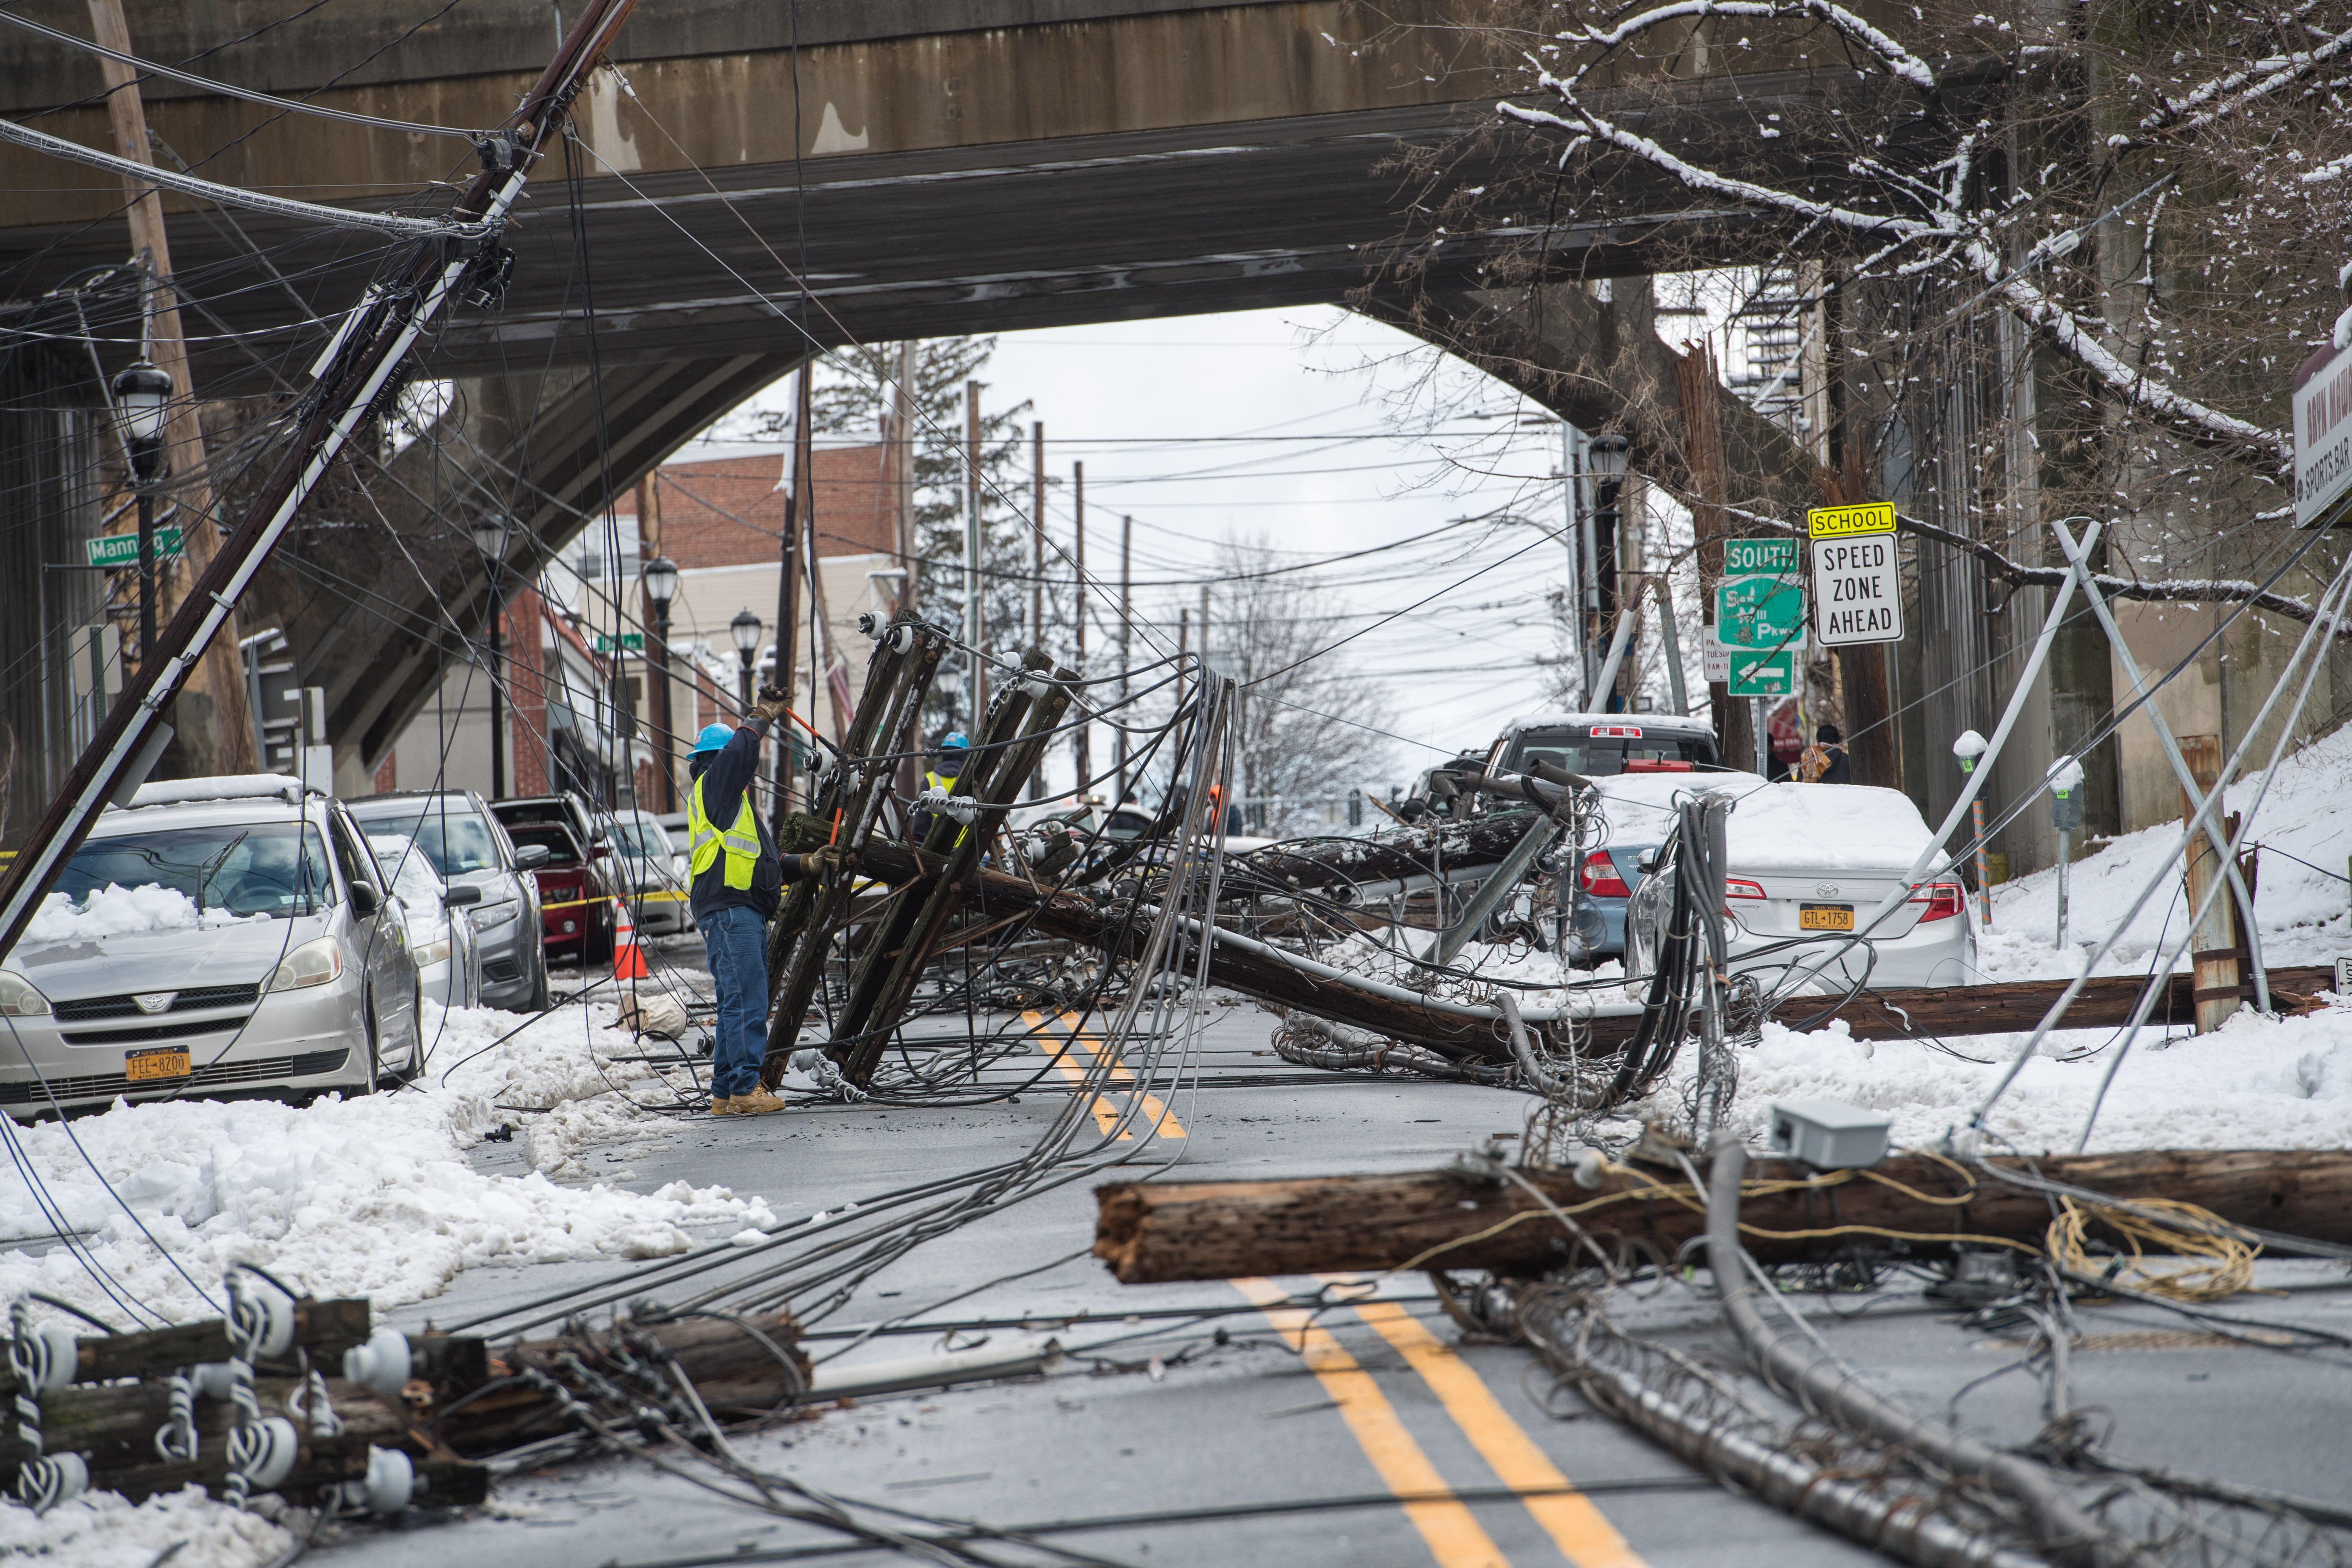 Damage from the Riley-Quinn storm events